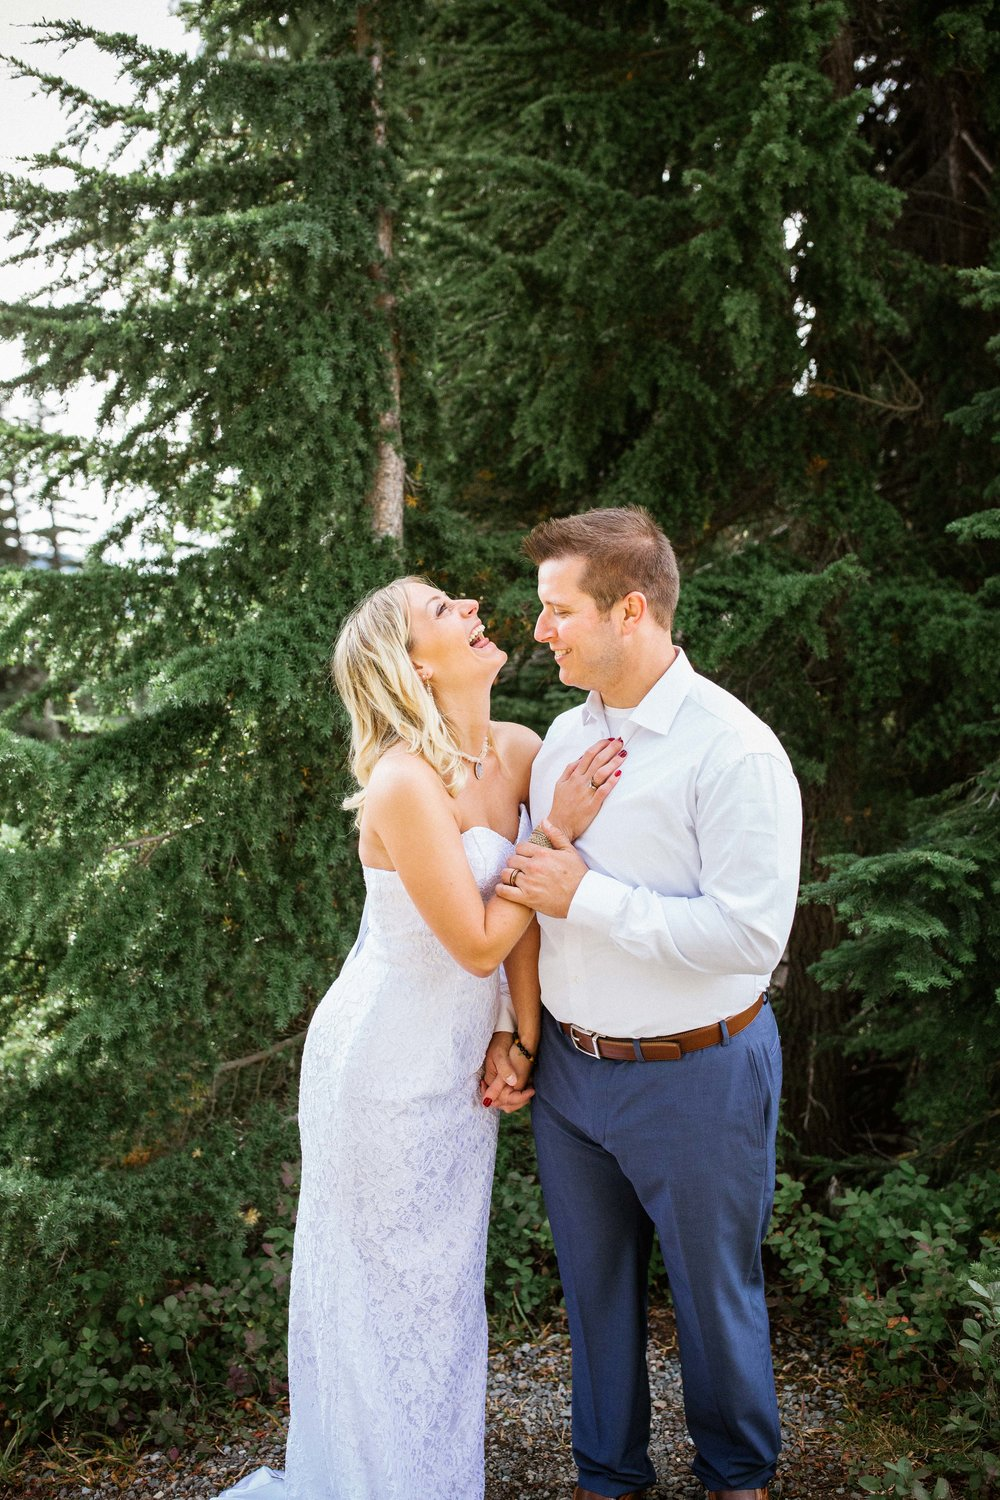 Ashley&Josh-Sneak Peek!BLOG-49.jpg